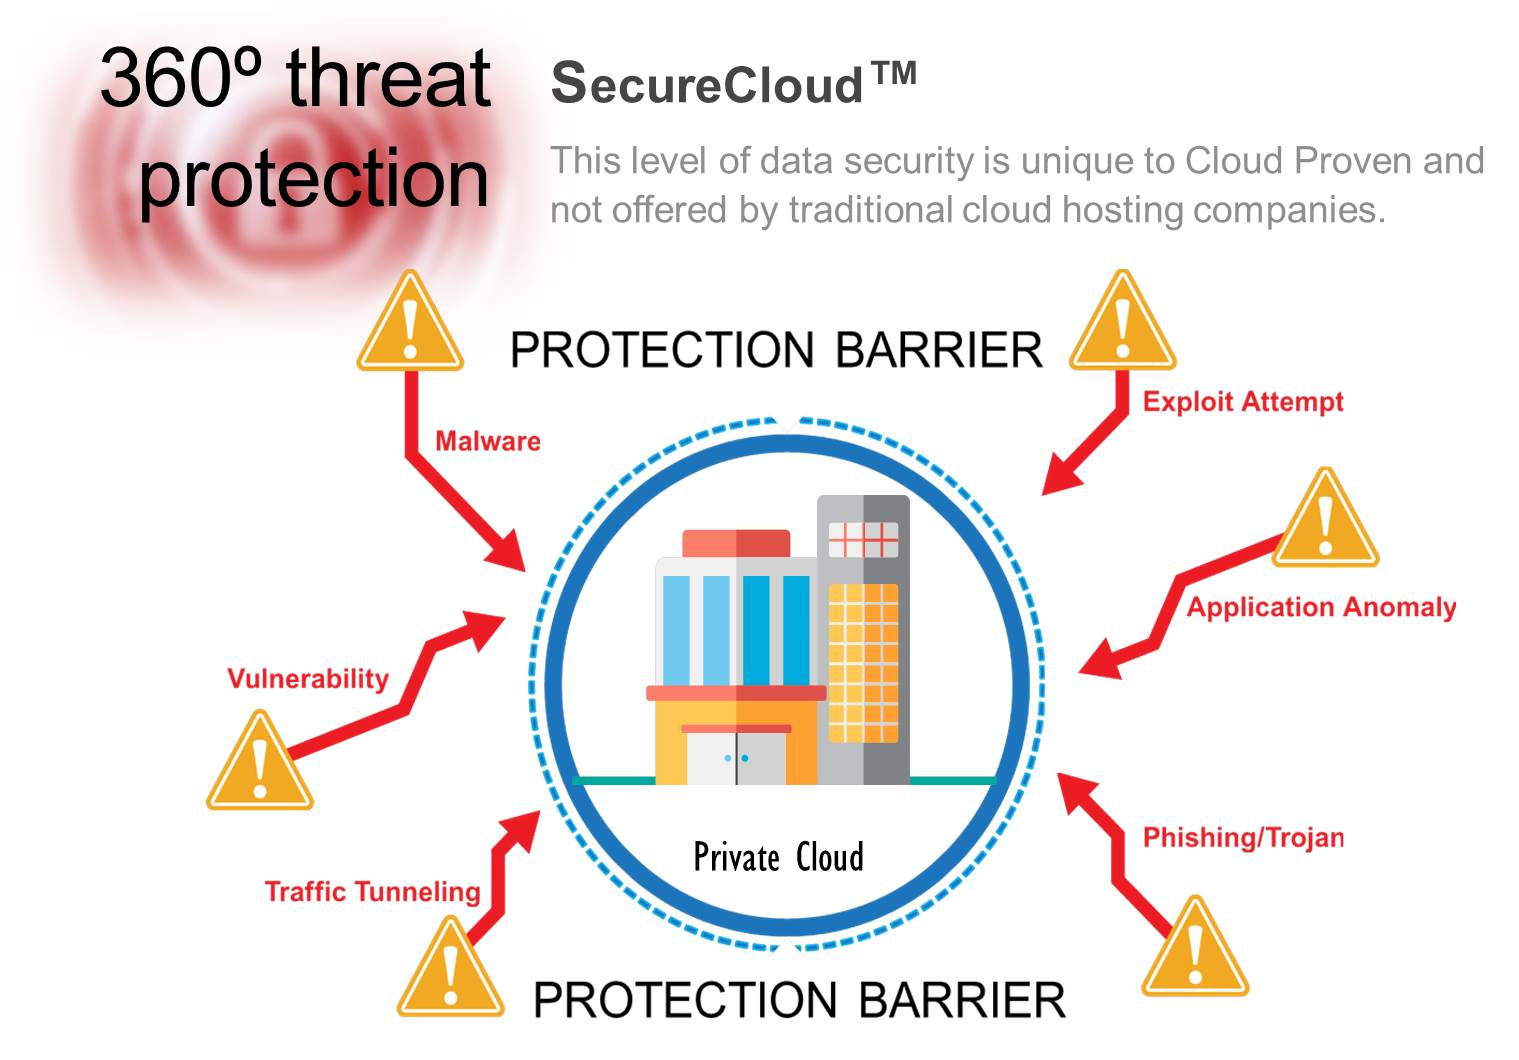 securecloud-360.jpg